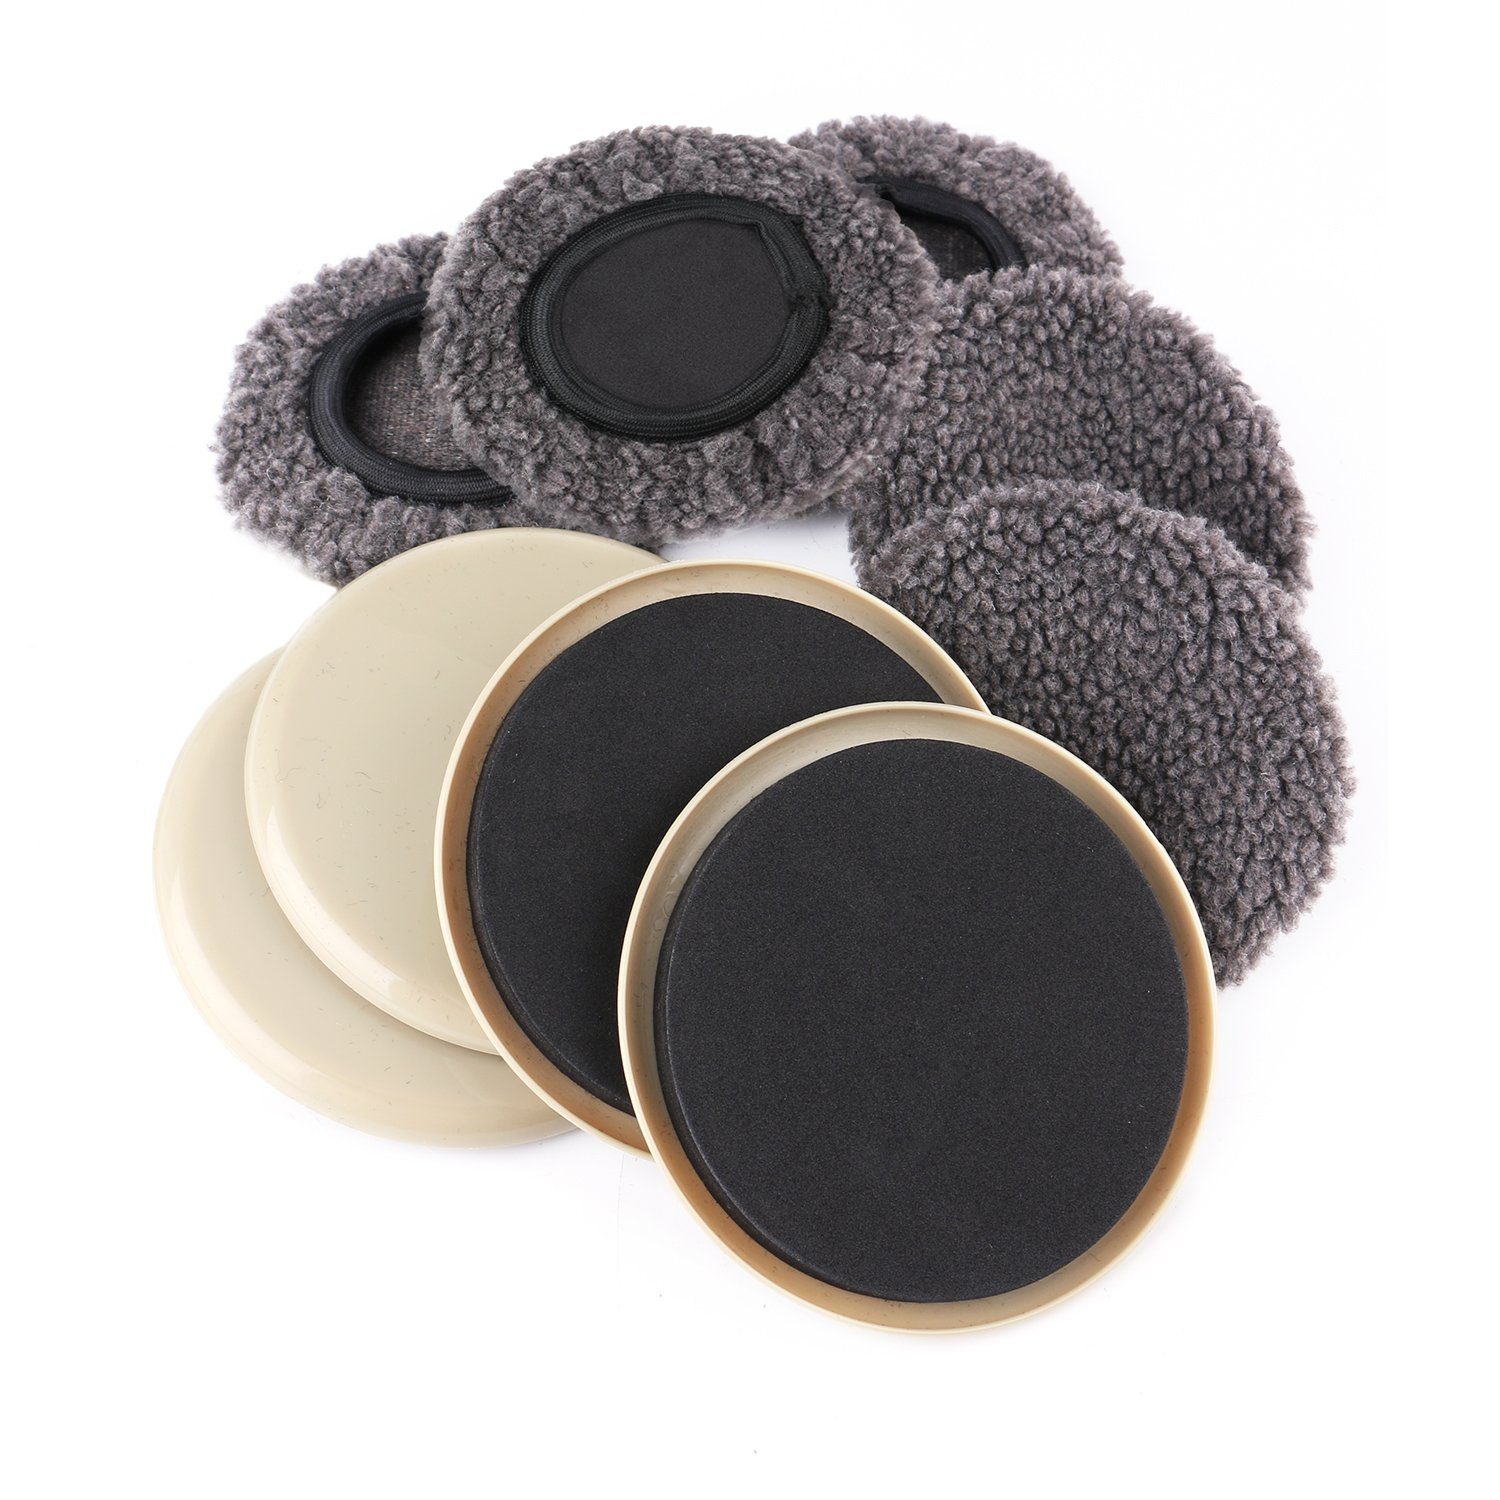 Furniture Slider - (5 Pack) 5 inch Round Reusable Furniture Sliders for Hard Surfaces & Carpet- Sock Sliders for Hard Surfaces -Plastic Furniture Movers for Carpet Surfaces by Thetis Homes